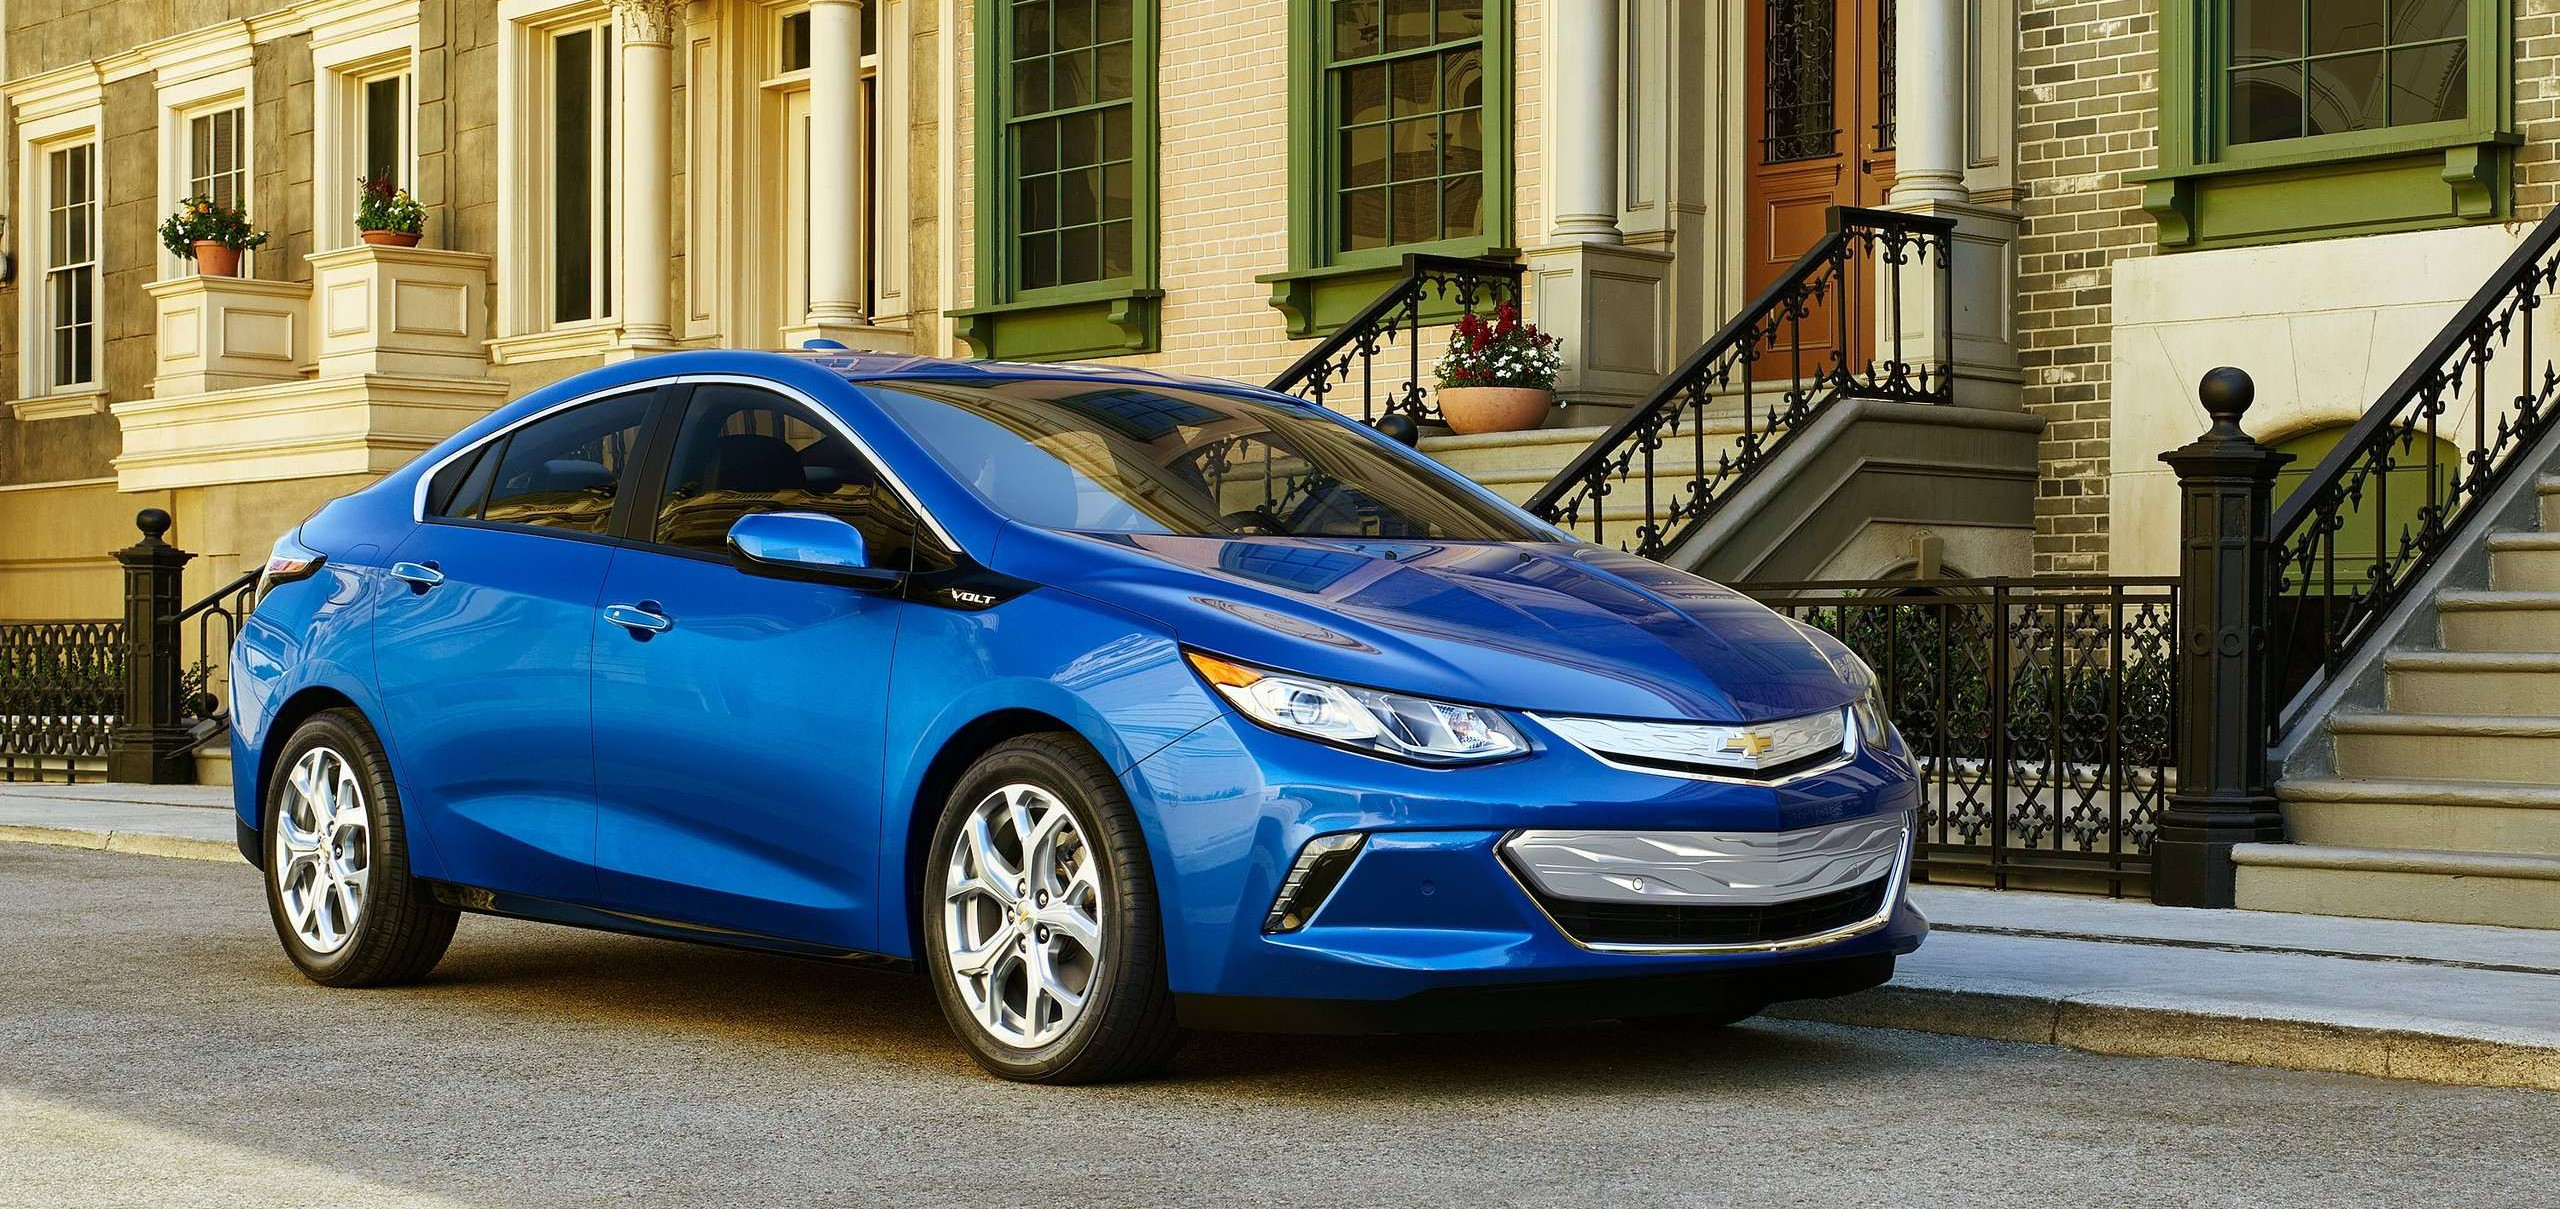 Chevrolet-Volt-2016-hd